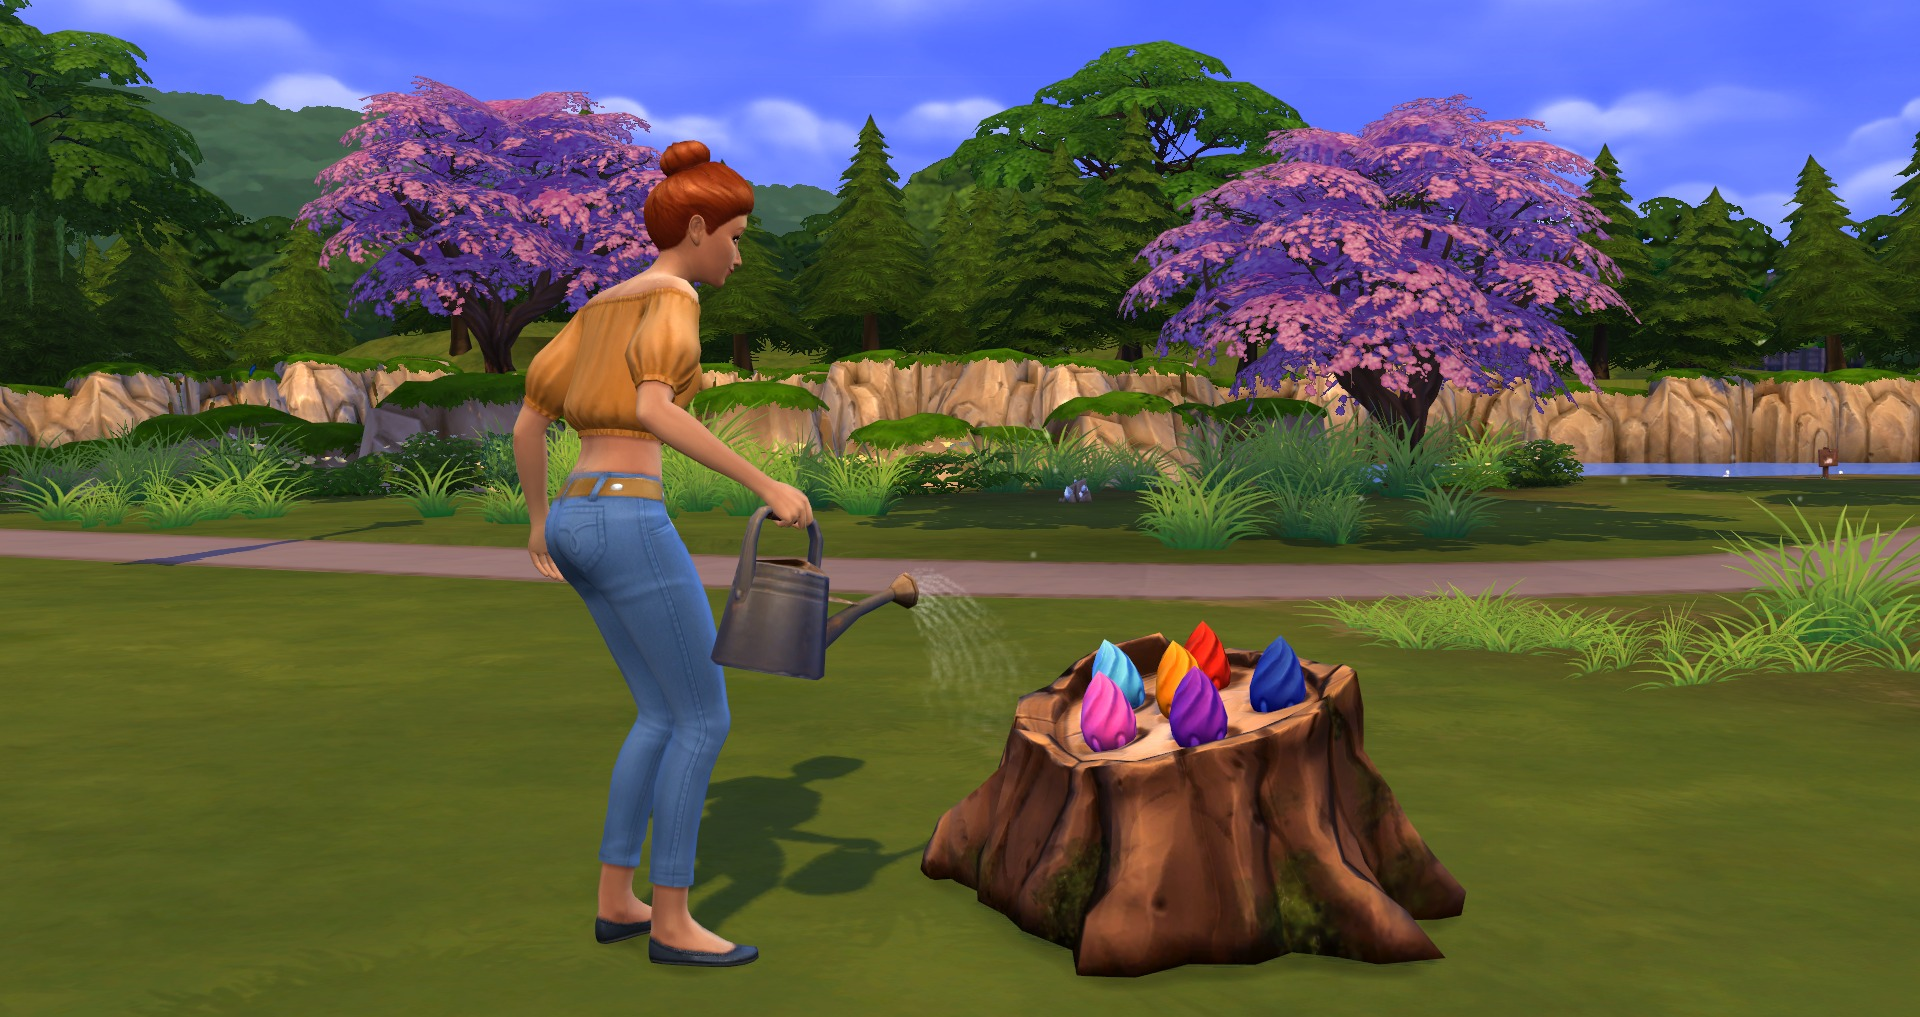 The Sims 4: How To Become/Cure a PlantSim | SimsVIP